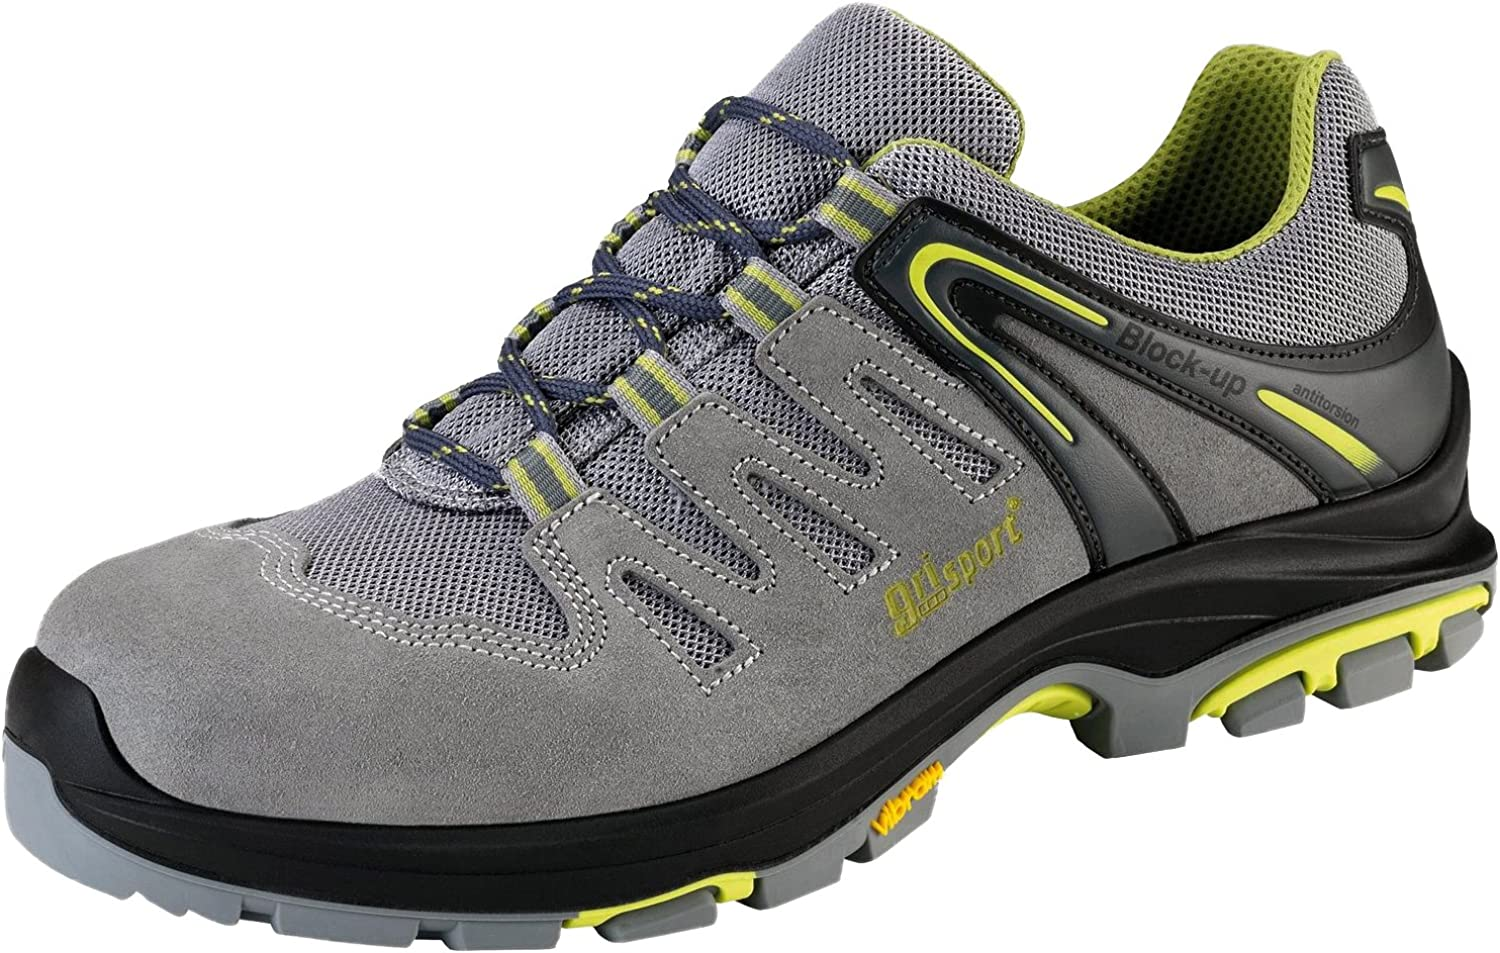 greyport 73653CS25 45 Safety low shoes  Misano  S1P SRC, Size 10.5, Grey Yellow - EN safety certified